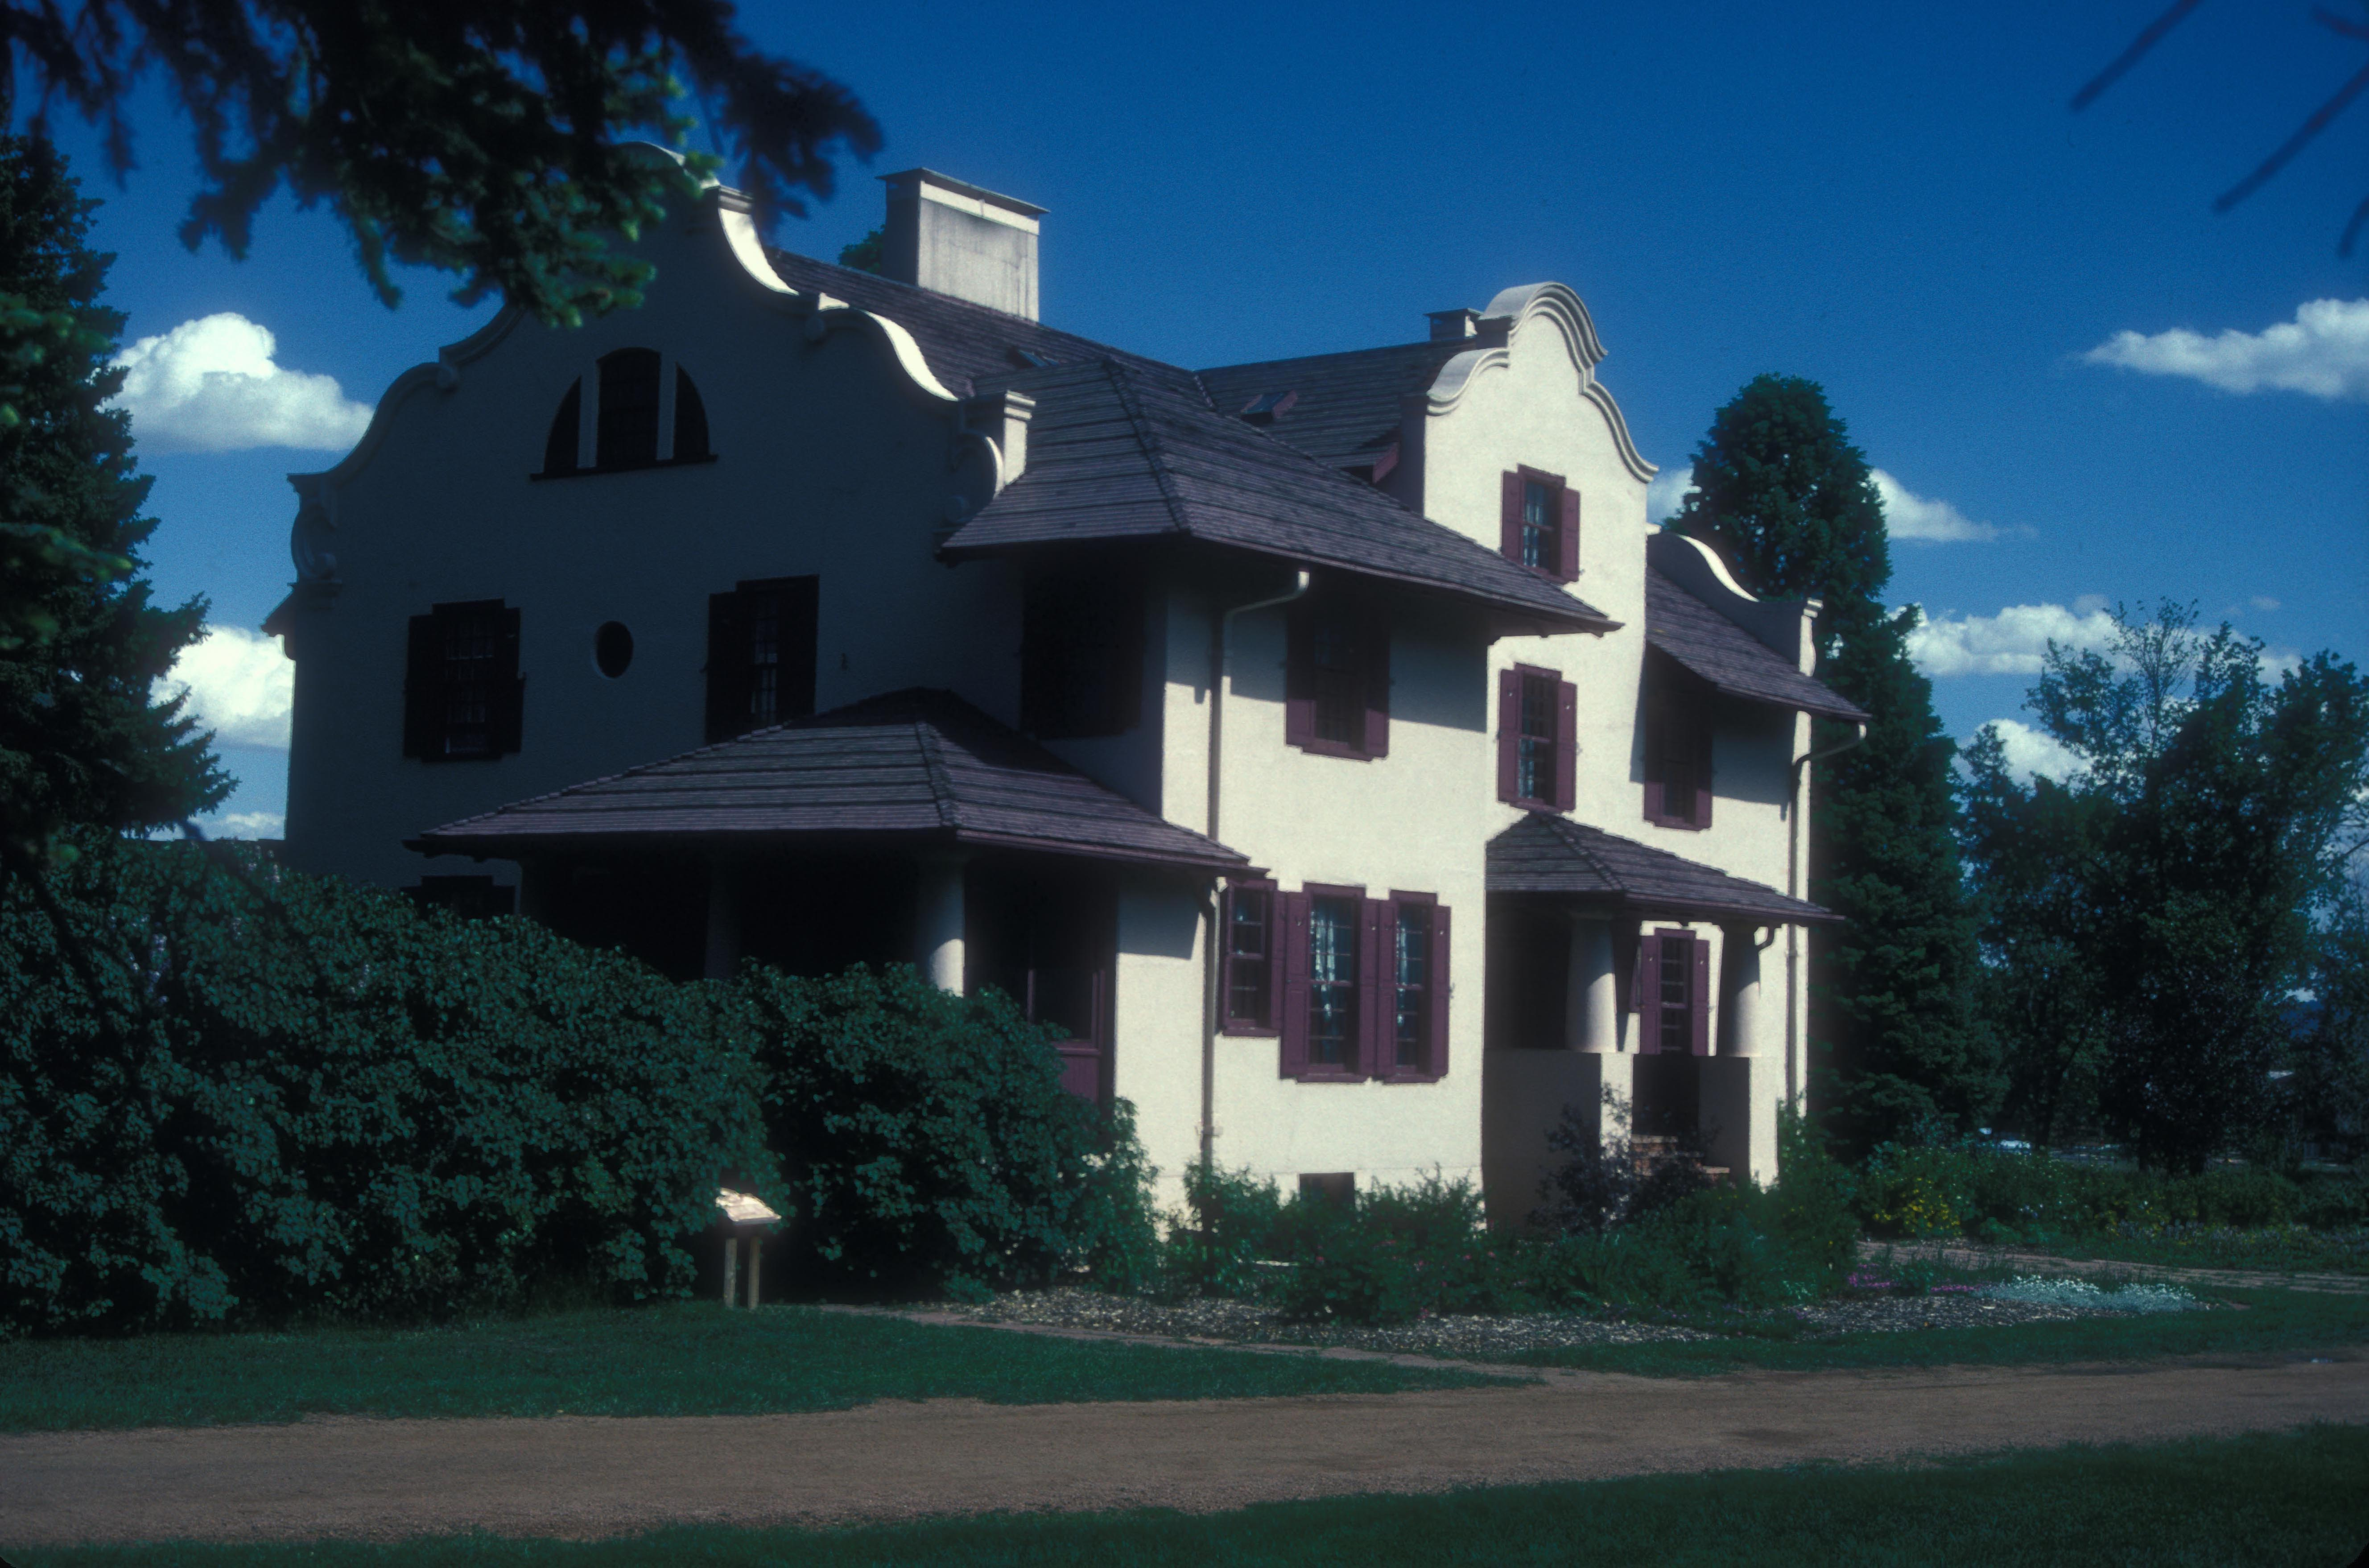 Rock Ledge Ranch Historic Site File:ORCHARD HOUSE; RO...